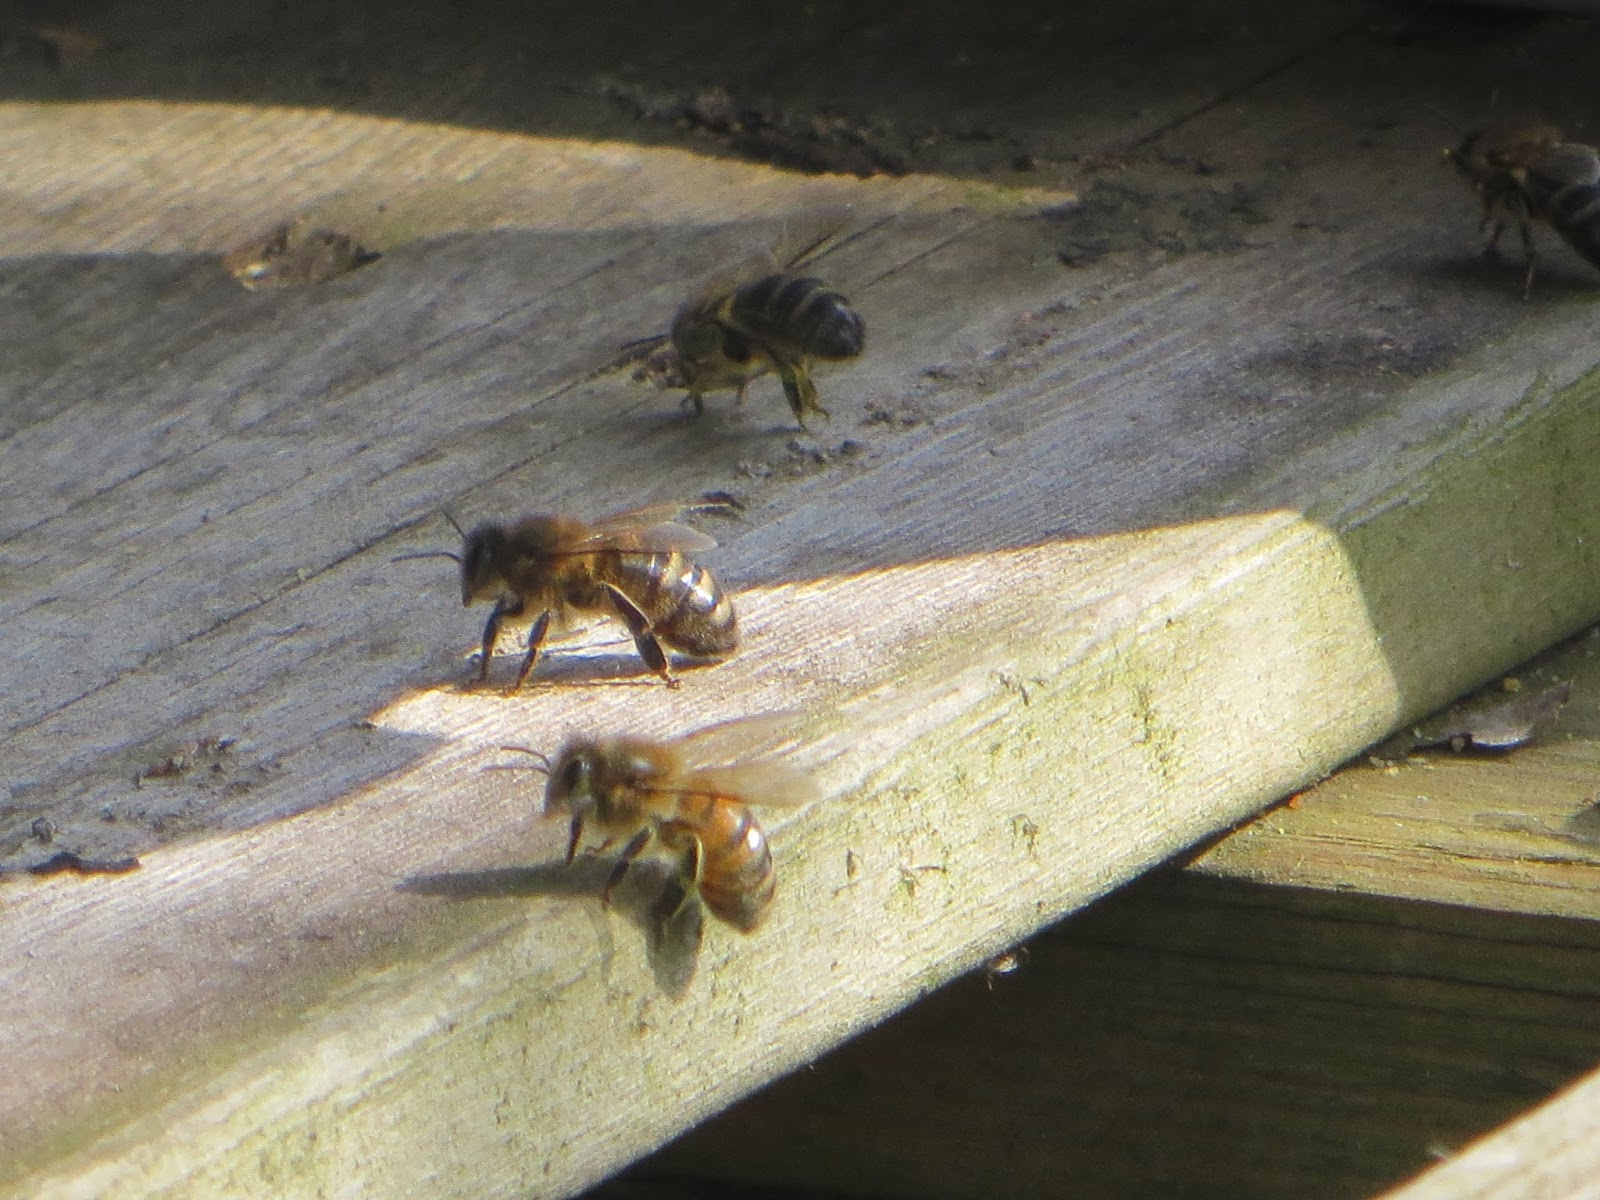 Bees having a buzz